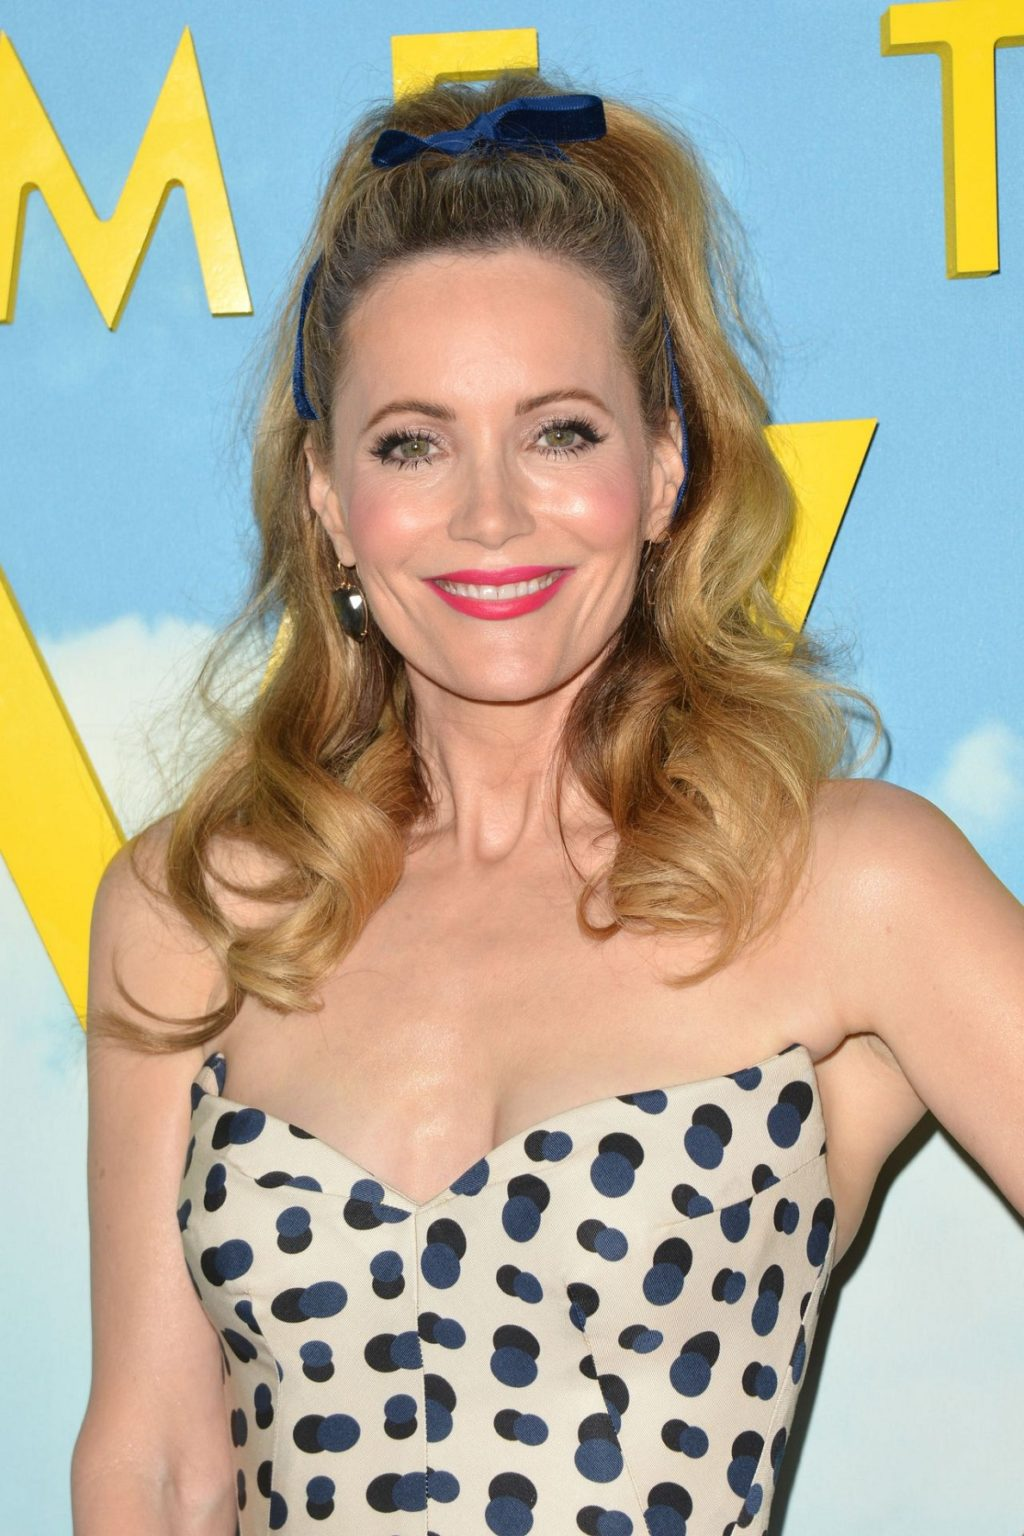 Sexy Leslie Mann Hot Bikini Pictures Are Bring Back The